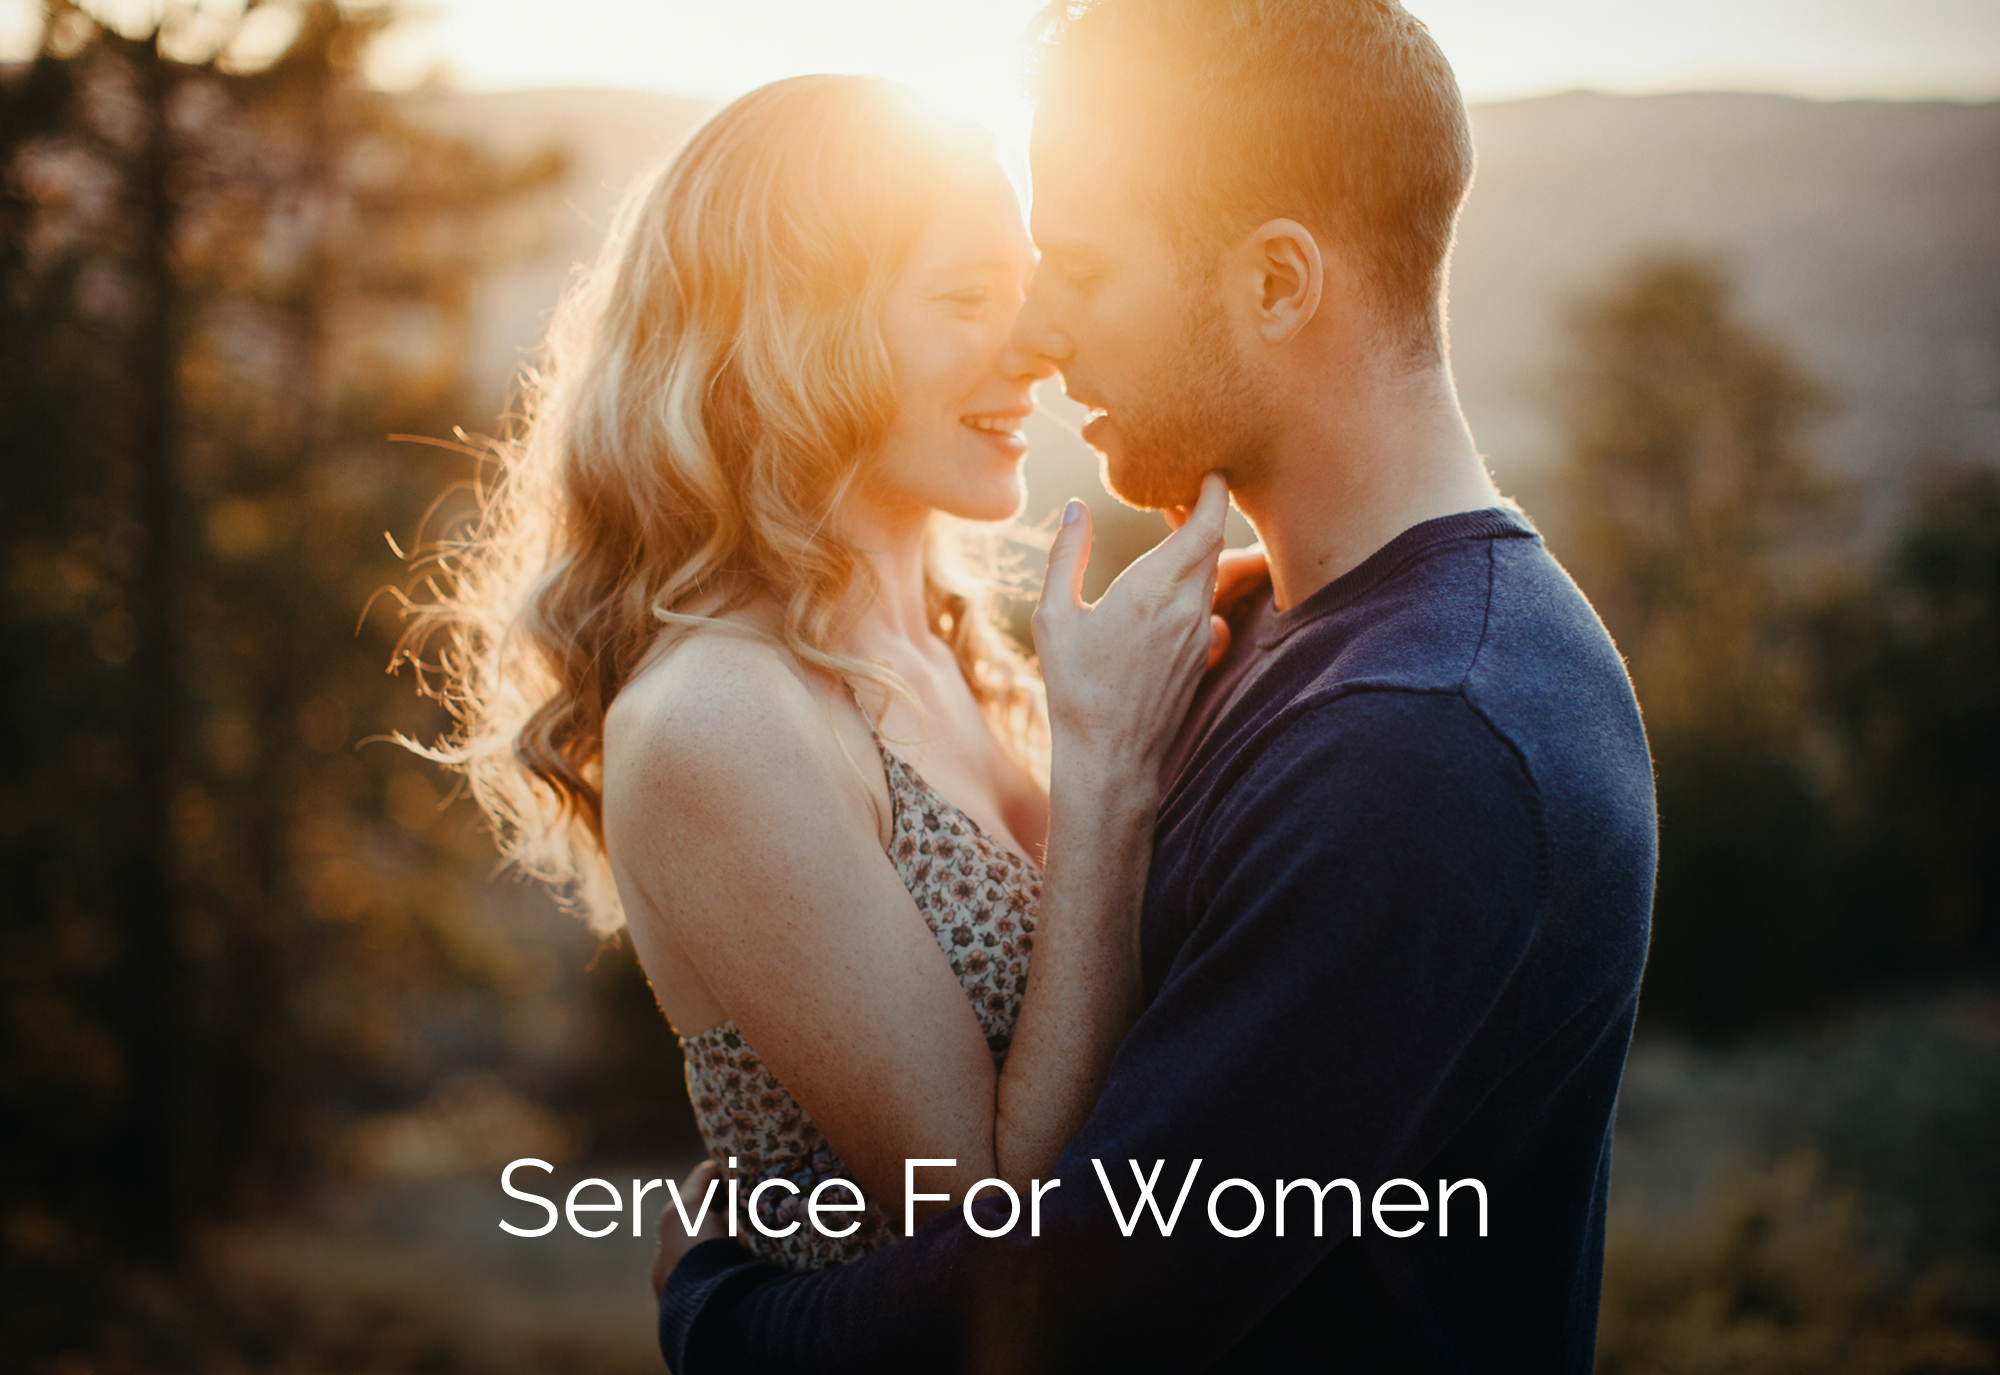 Service For Women